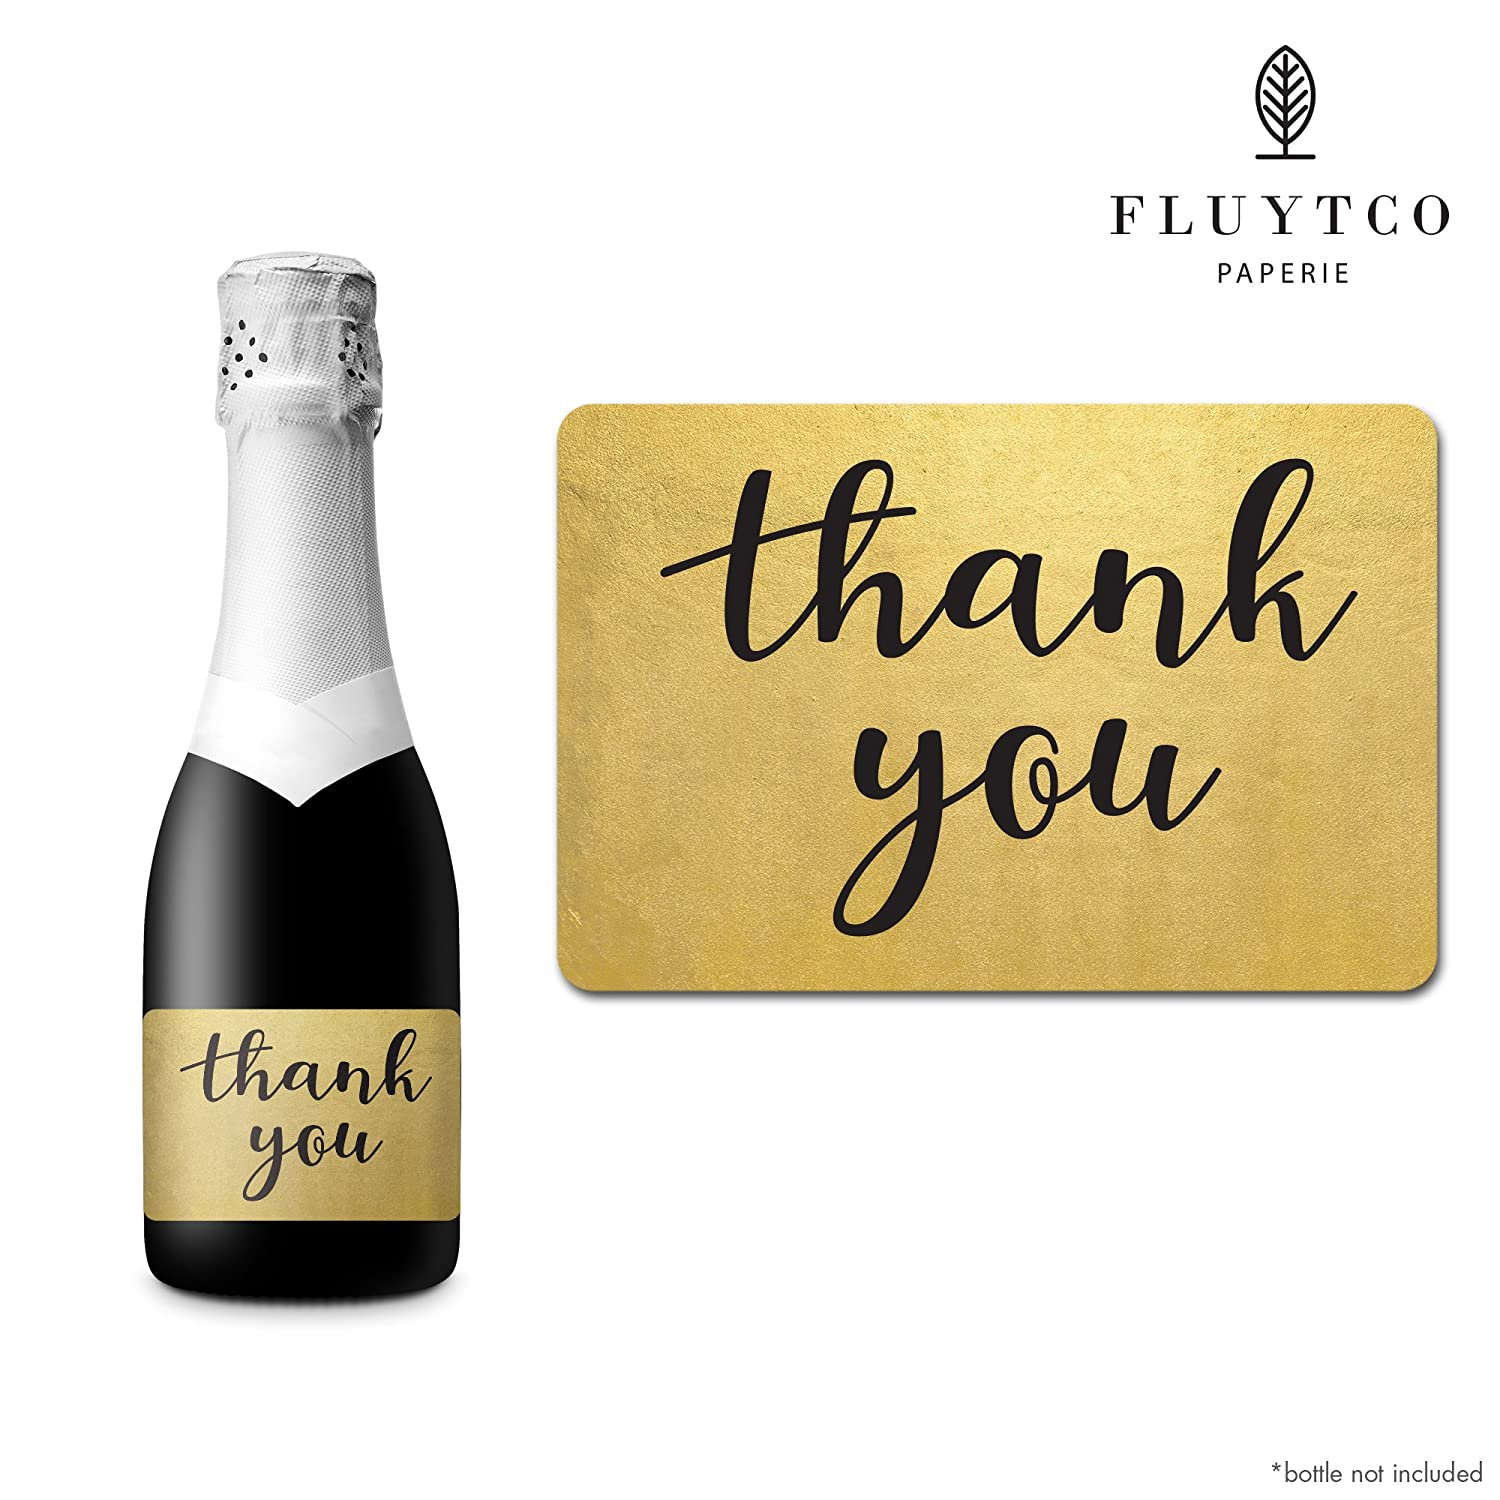 Thank You - Gold Foil - Set of 20 Party Label Stickers for Mini Champagne & Wine Bottles, Bags, Cards - Wedding, Bridal Shower, Engagement Party, Baby Shower, Gift Idea